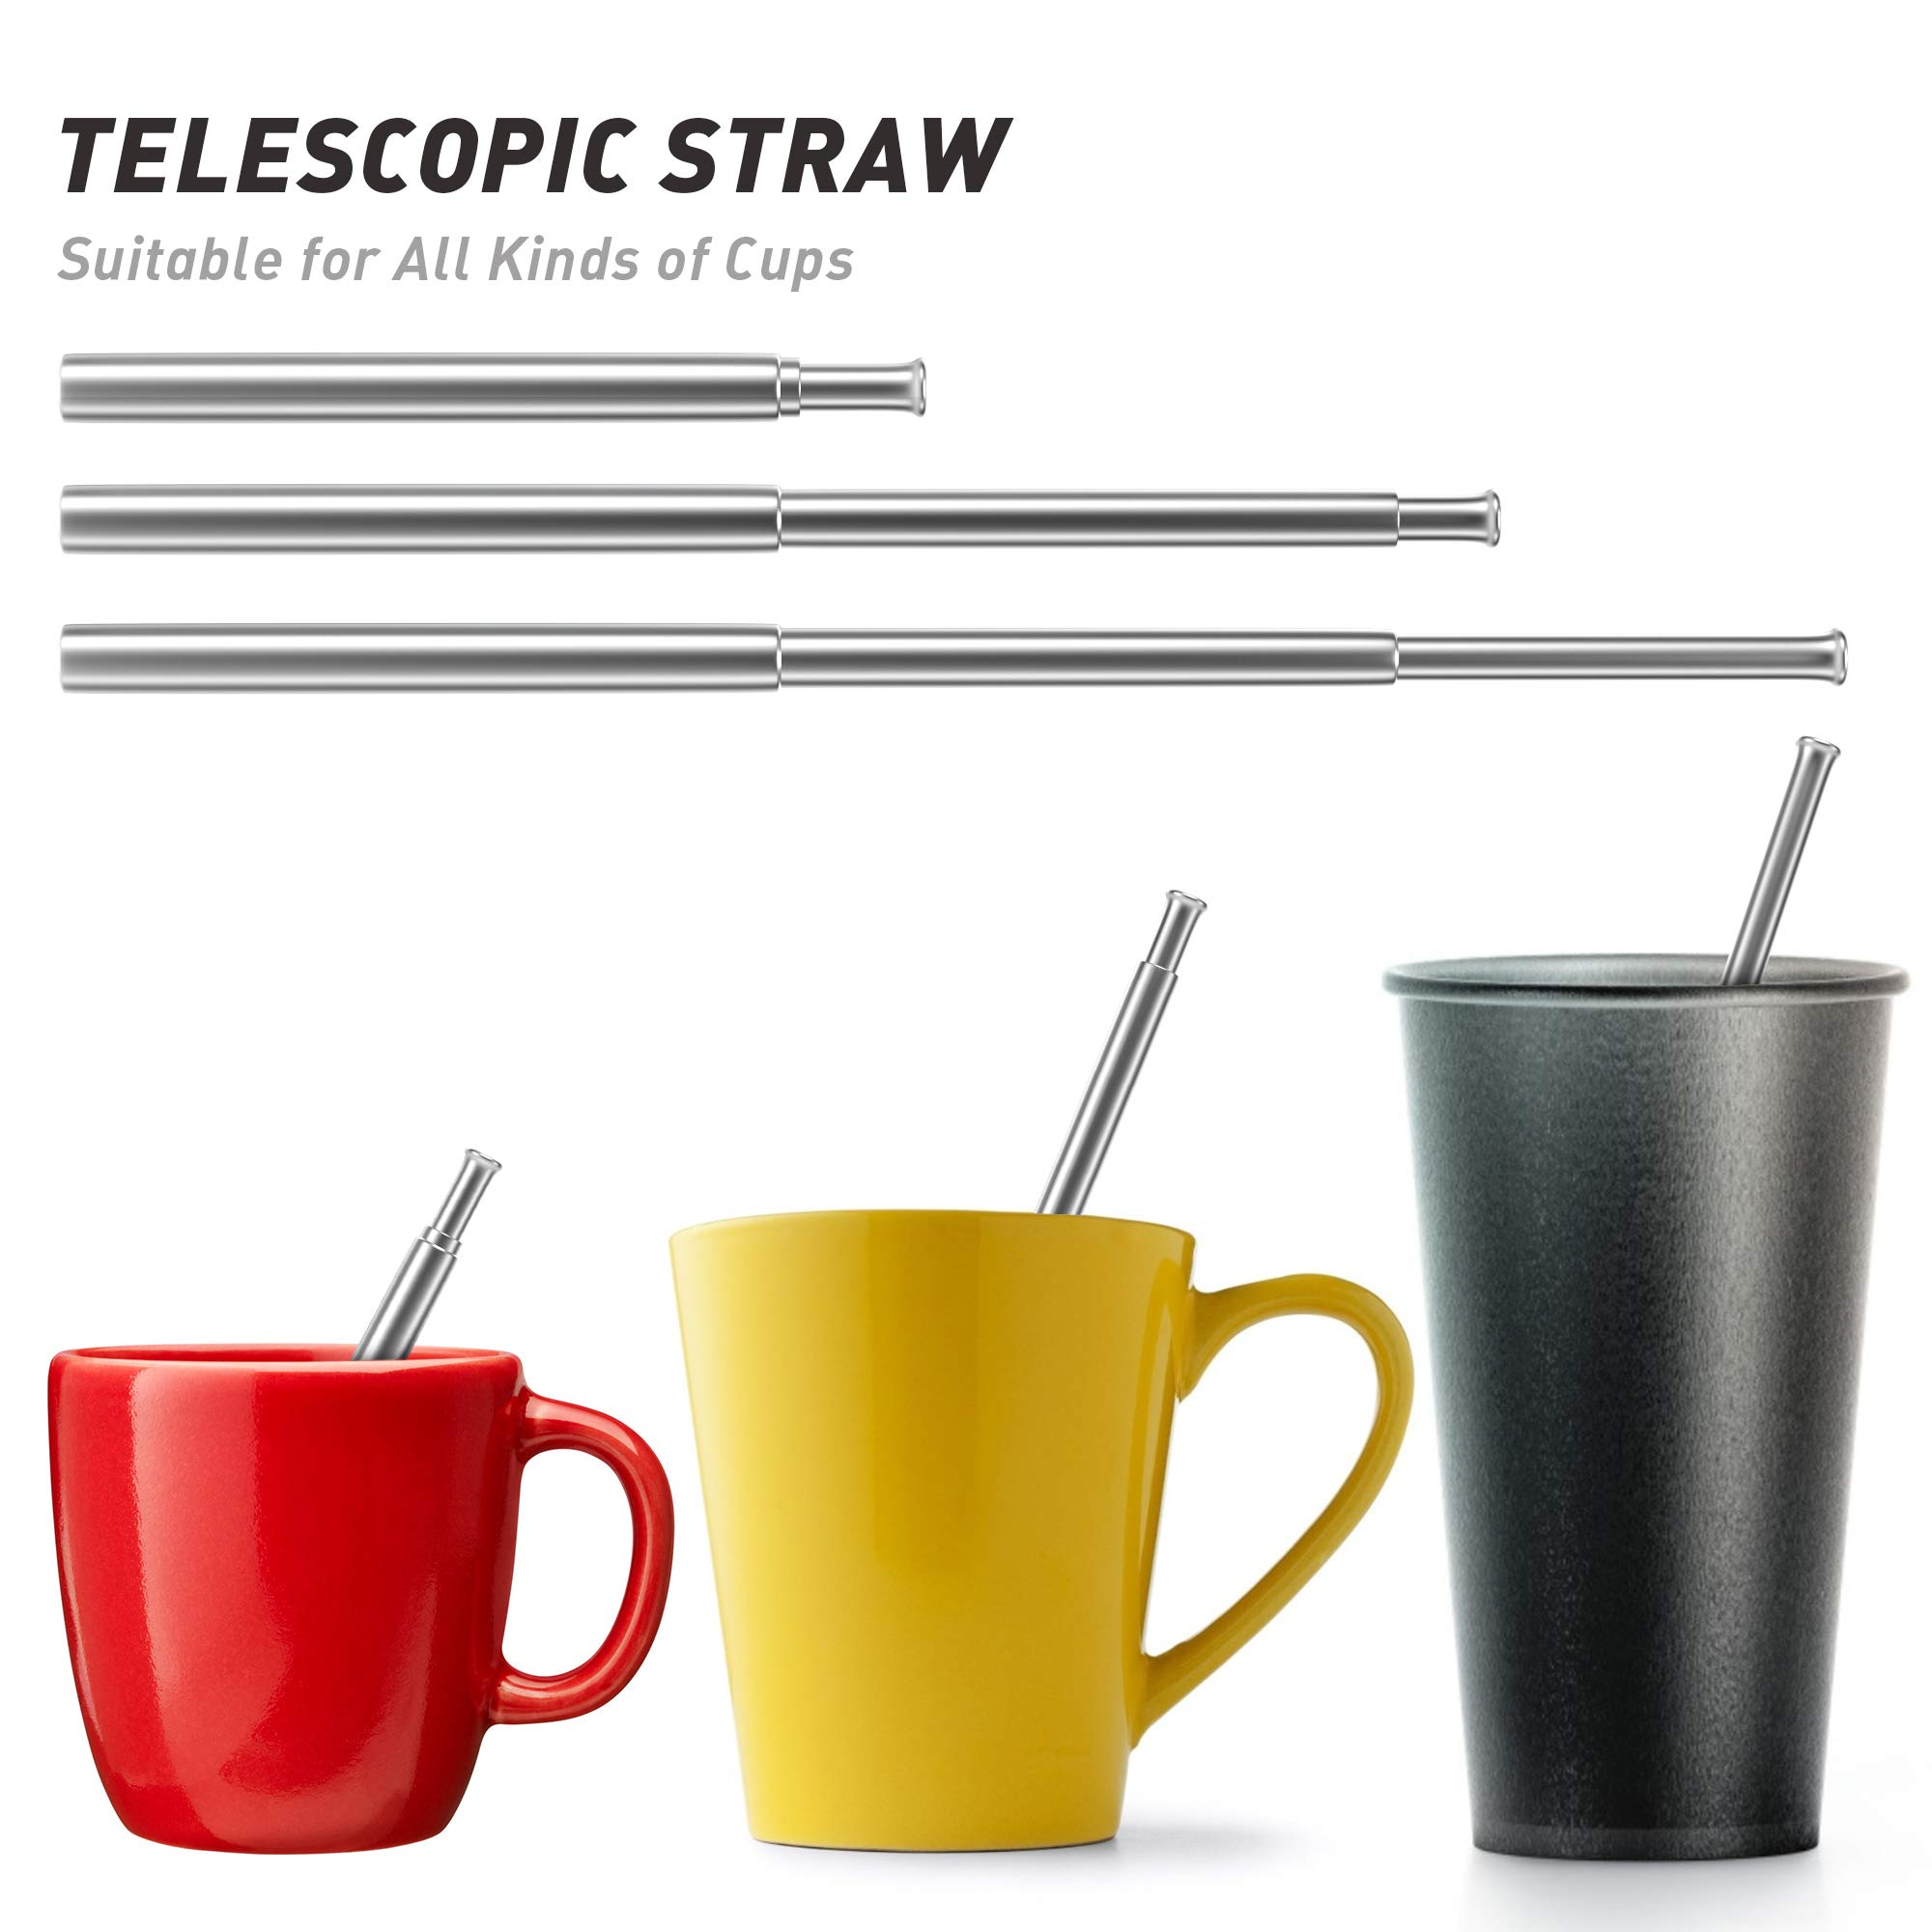 Reusable Straws - 2 Pack Telescopic Reusable Straws Stainless Steel Metal Drinking Straw (P-Black/Silver)